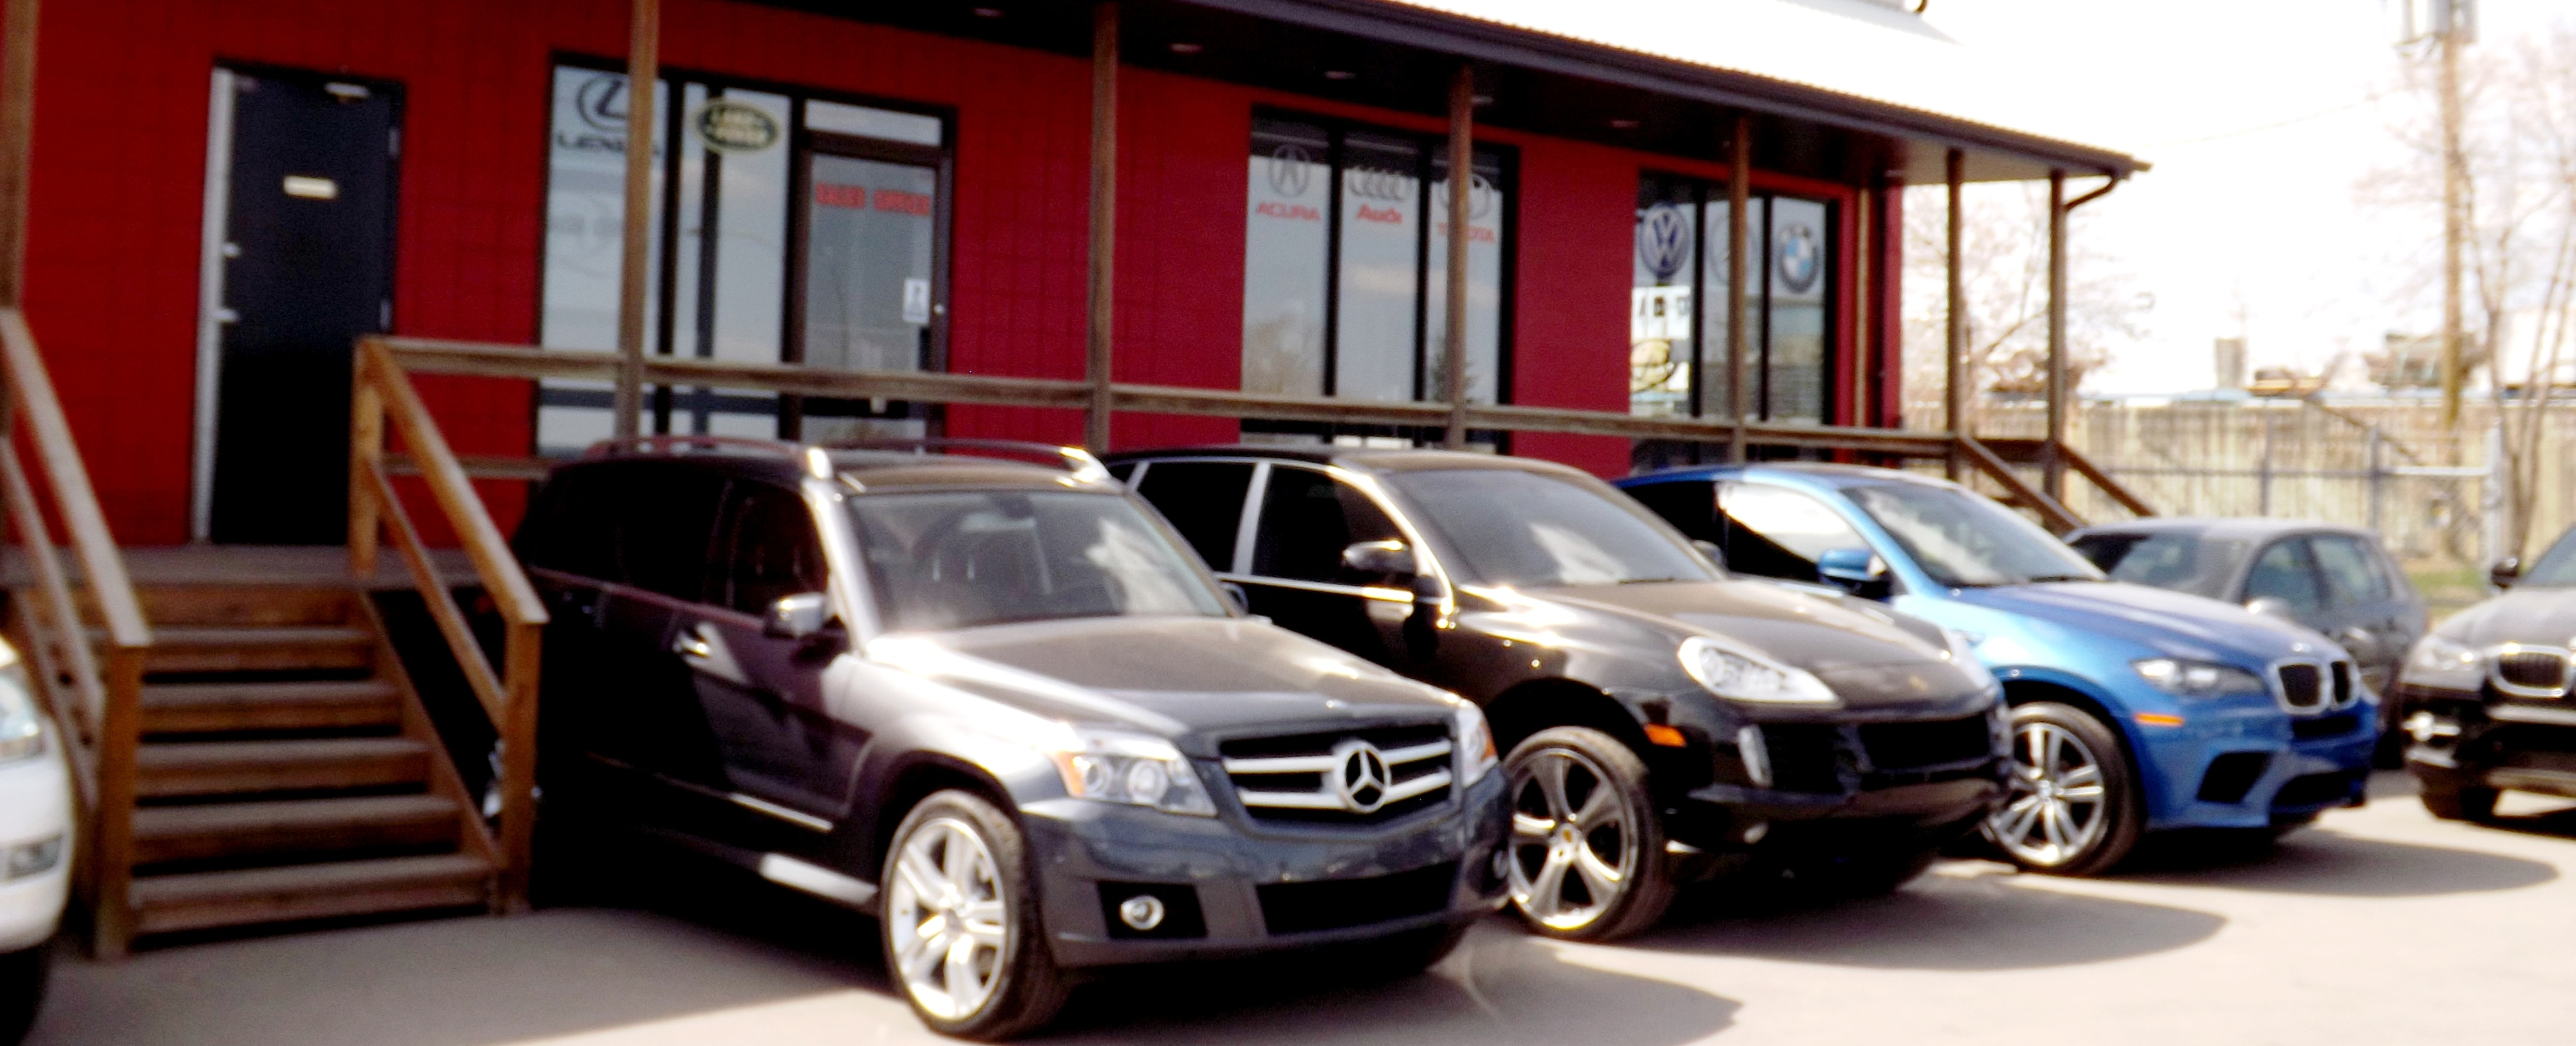 Used car dealers in calgary alberta